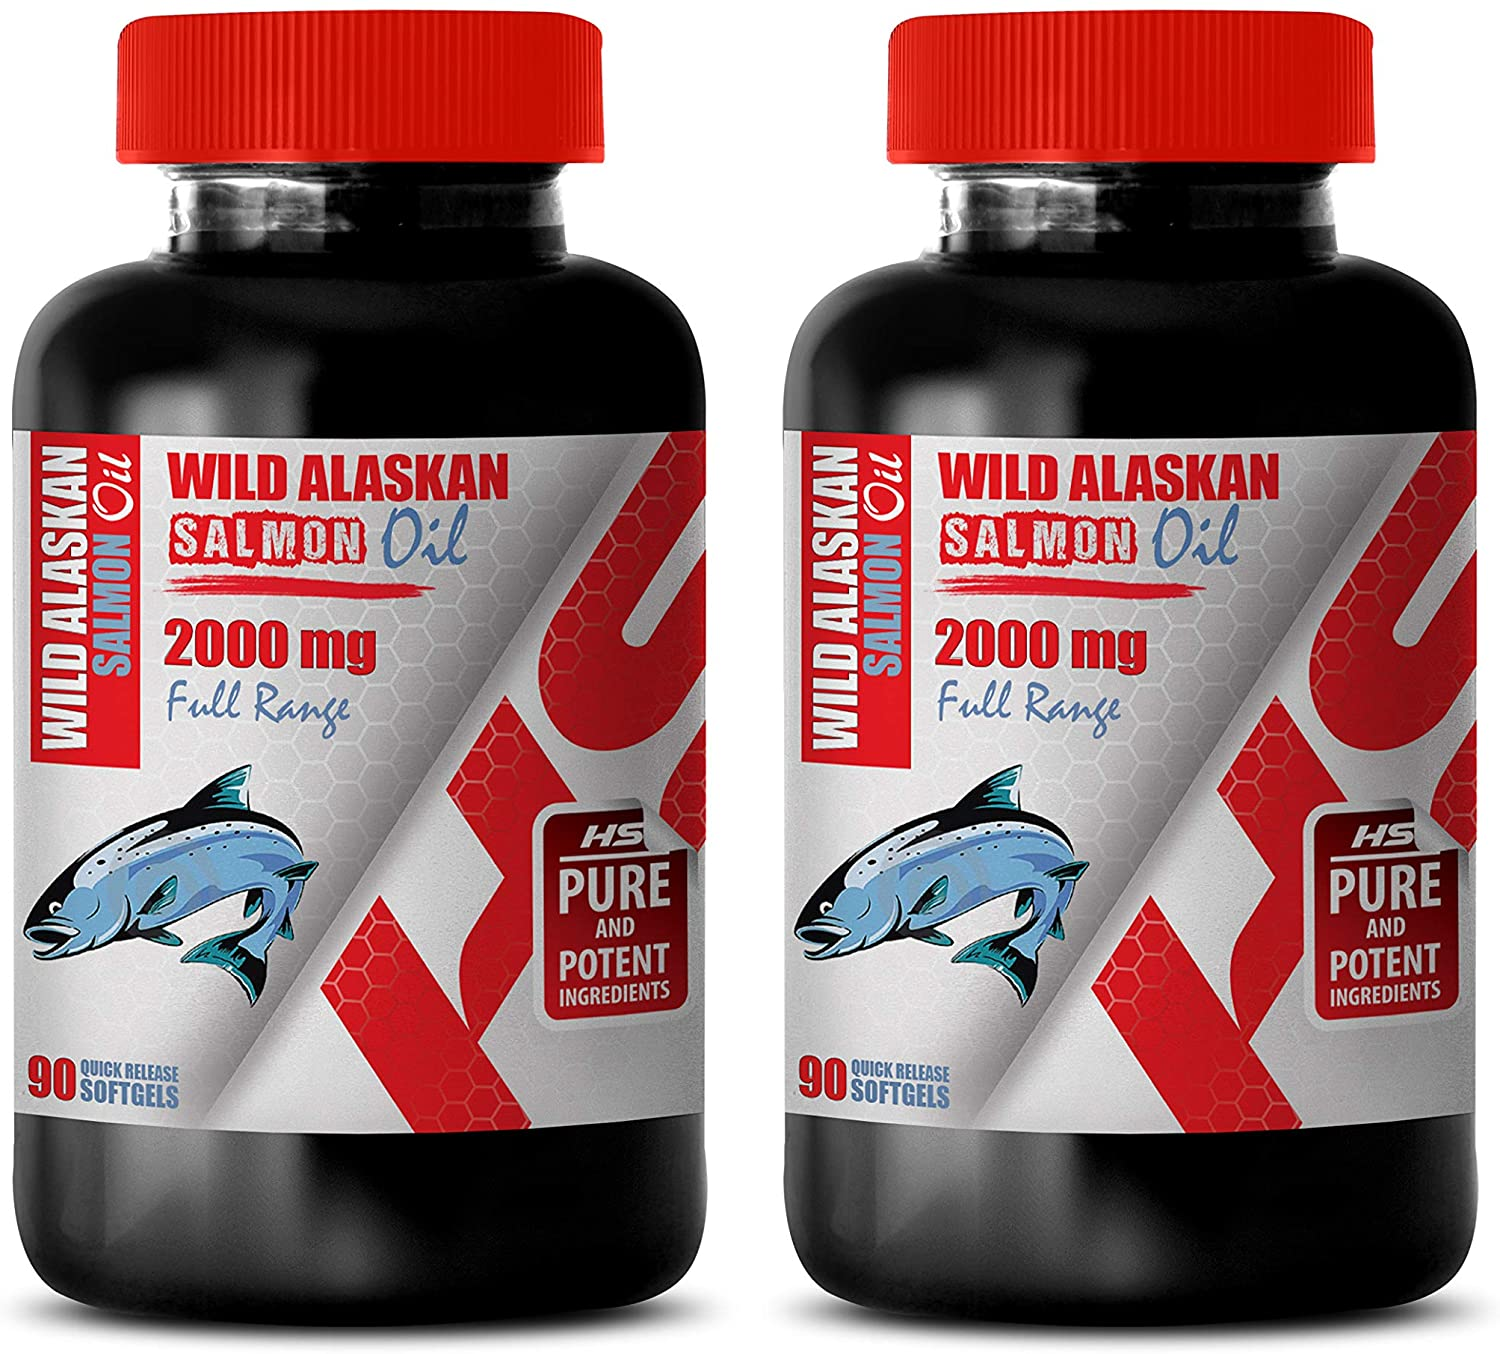 Brain Function Support Supplements - Wild Alaskan Salmon Oil 2000 Mg Full Range - Fish Oil Bulk Supplements - 2 Bottles 180 Softgels